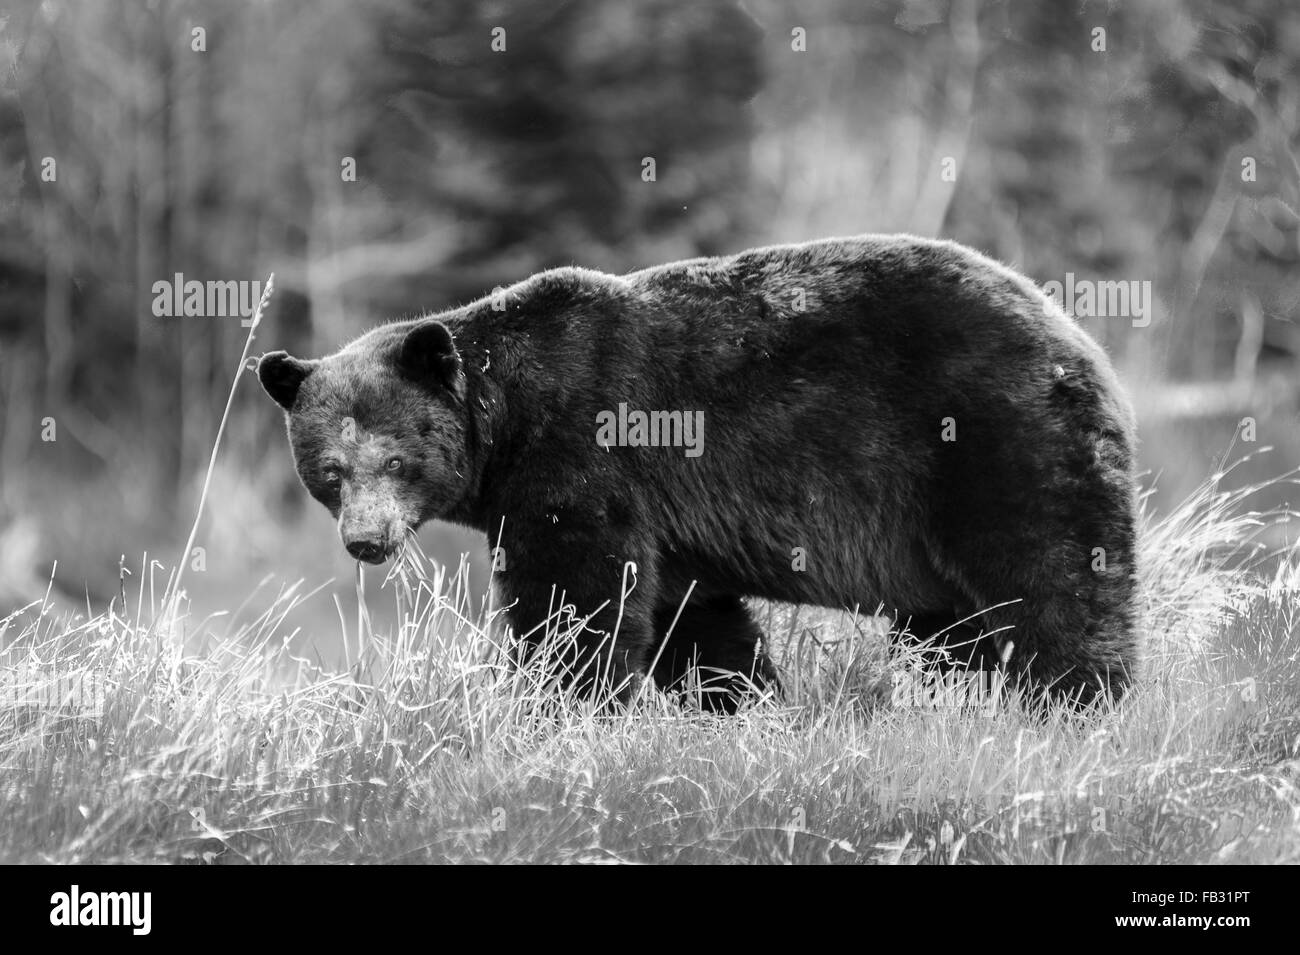 Grizzly bear walking - photo#46